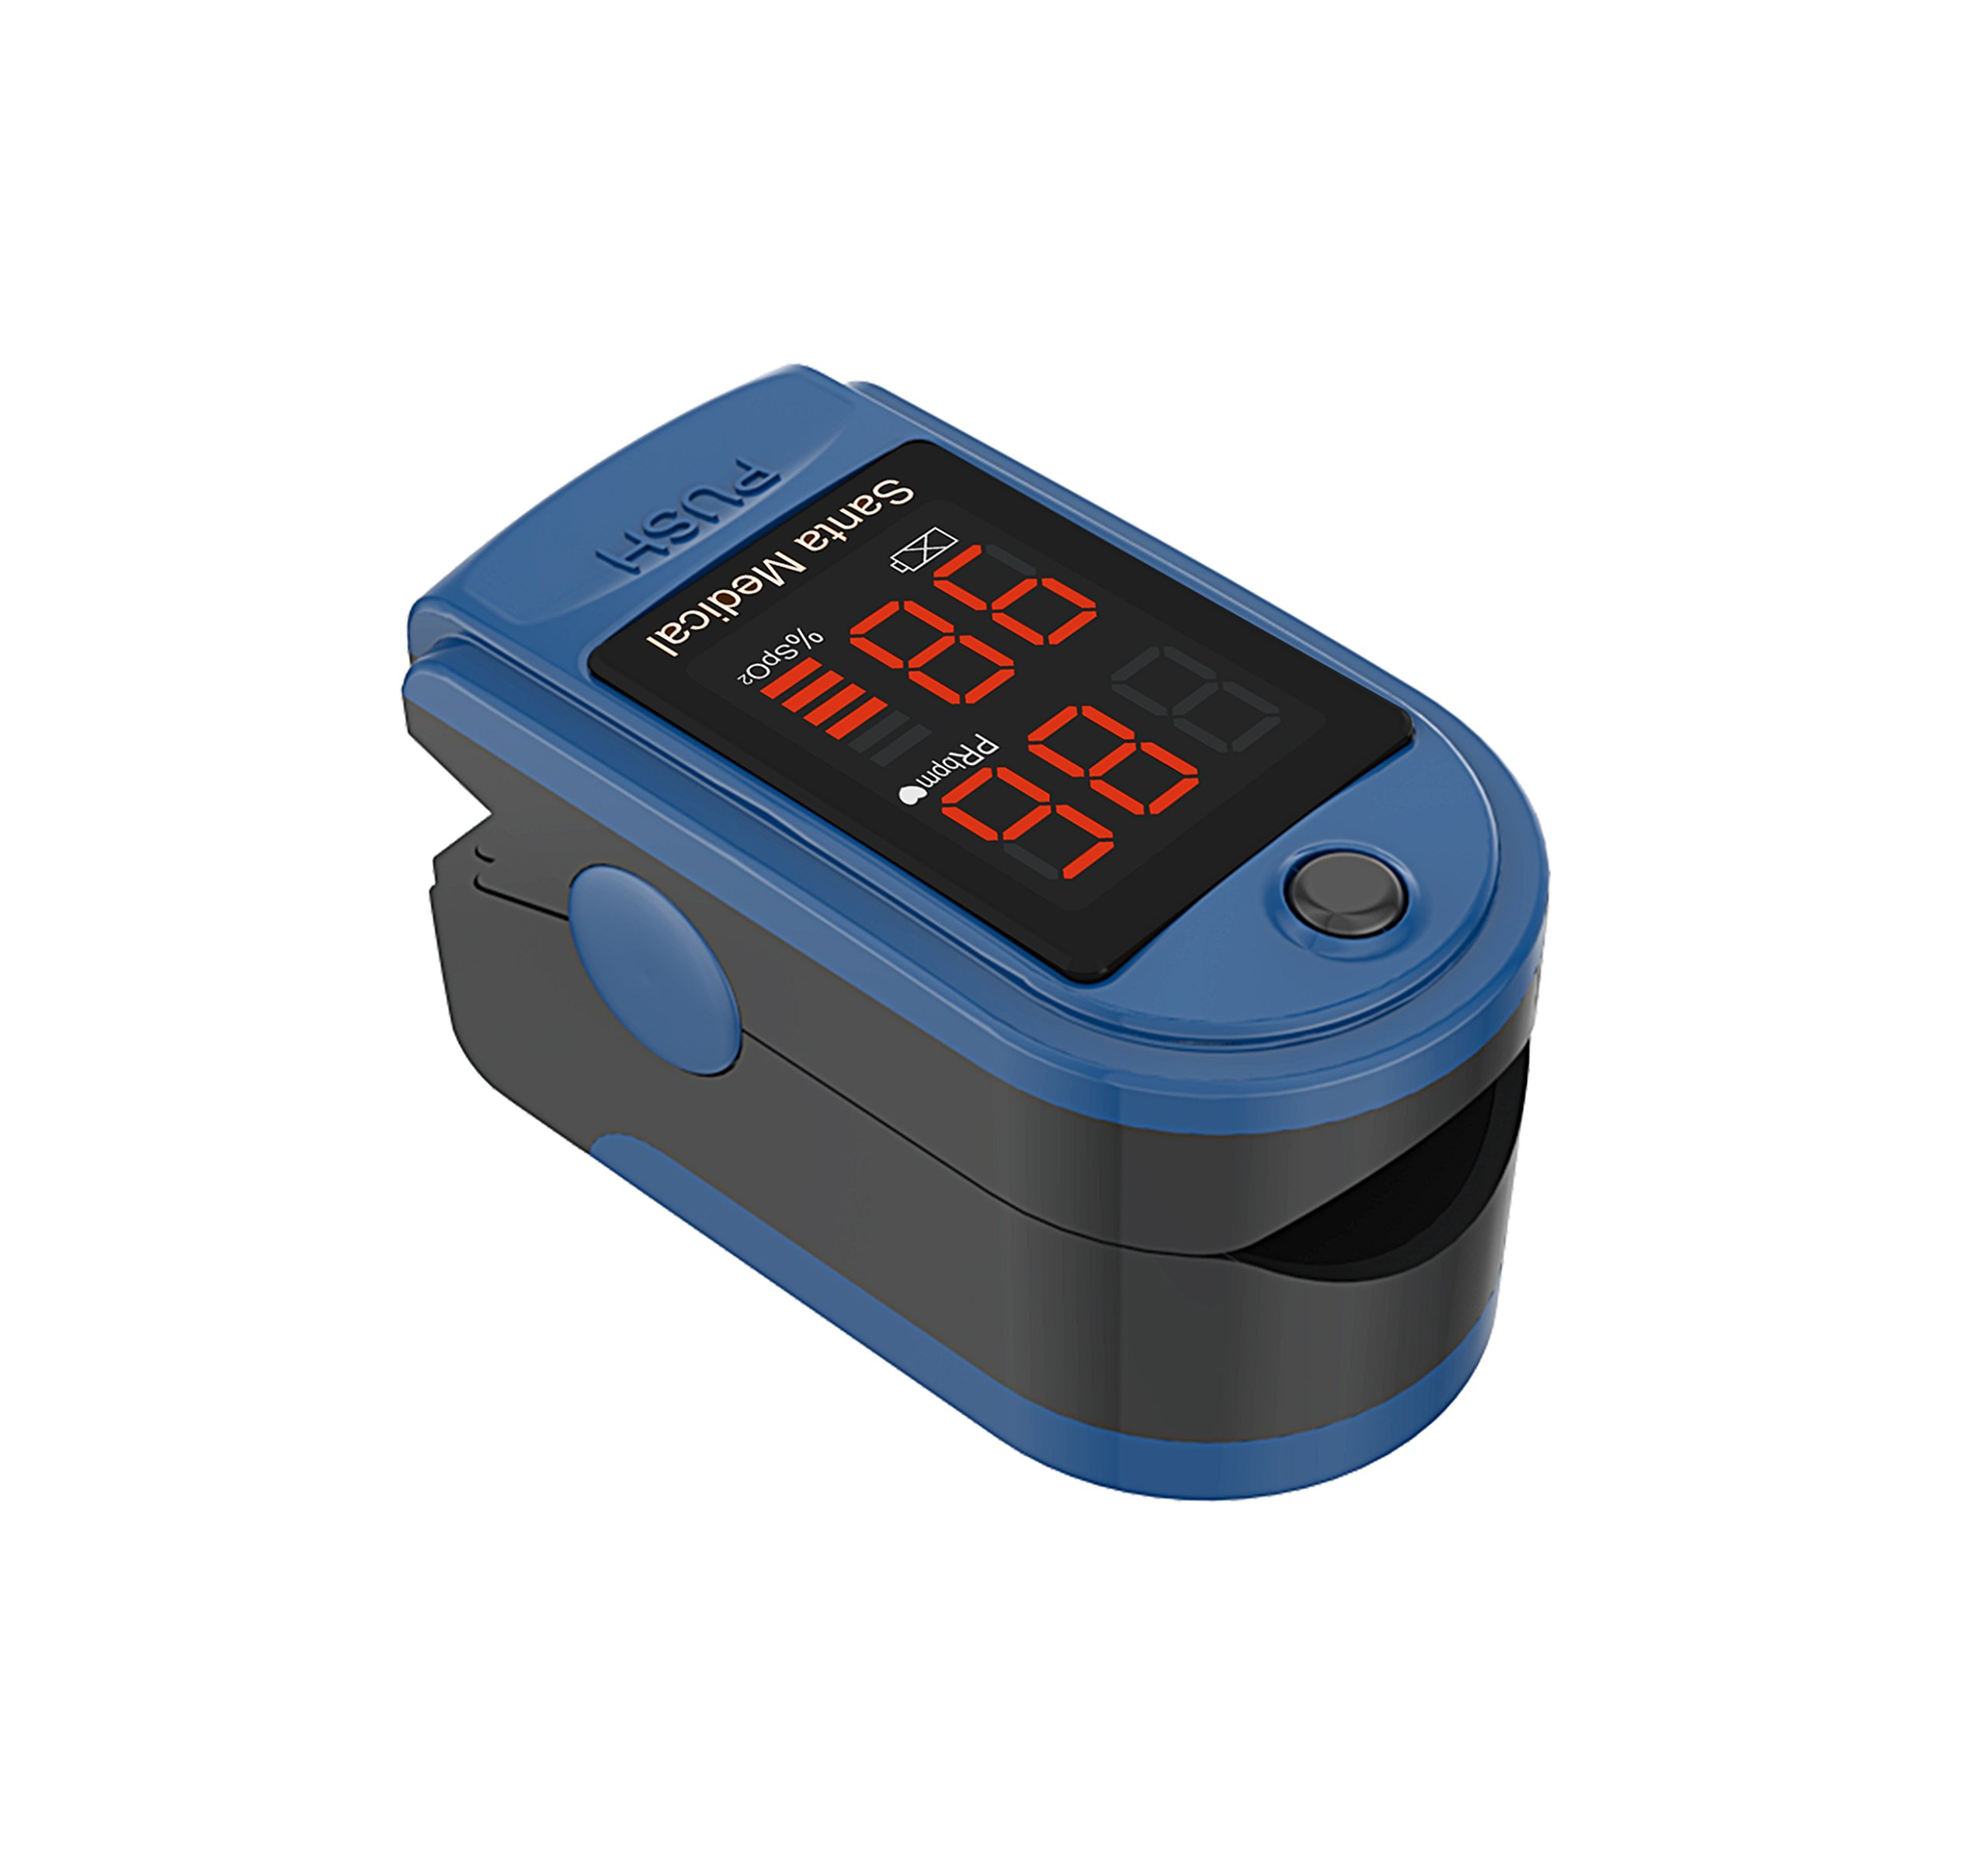 Santamedical Generation 2 Fingertip Pulse Oximeter Oximetry Blood Oxygen Saturation Monitor with carrying case, batteries and lanyard - Blue